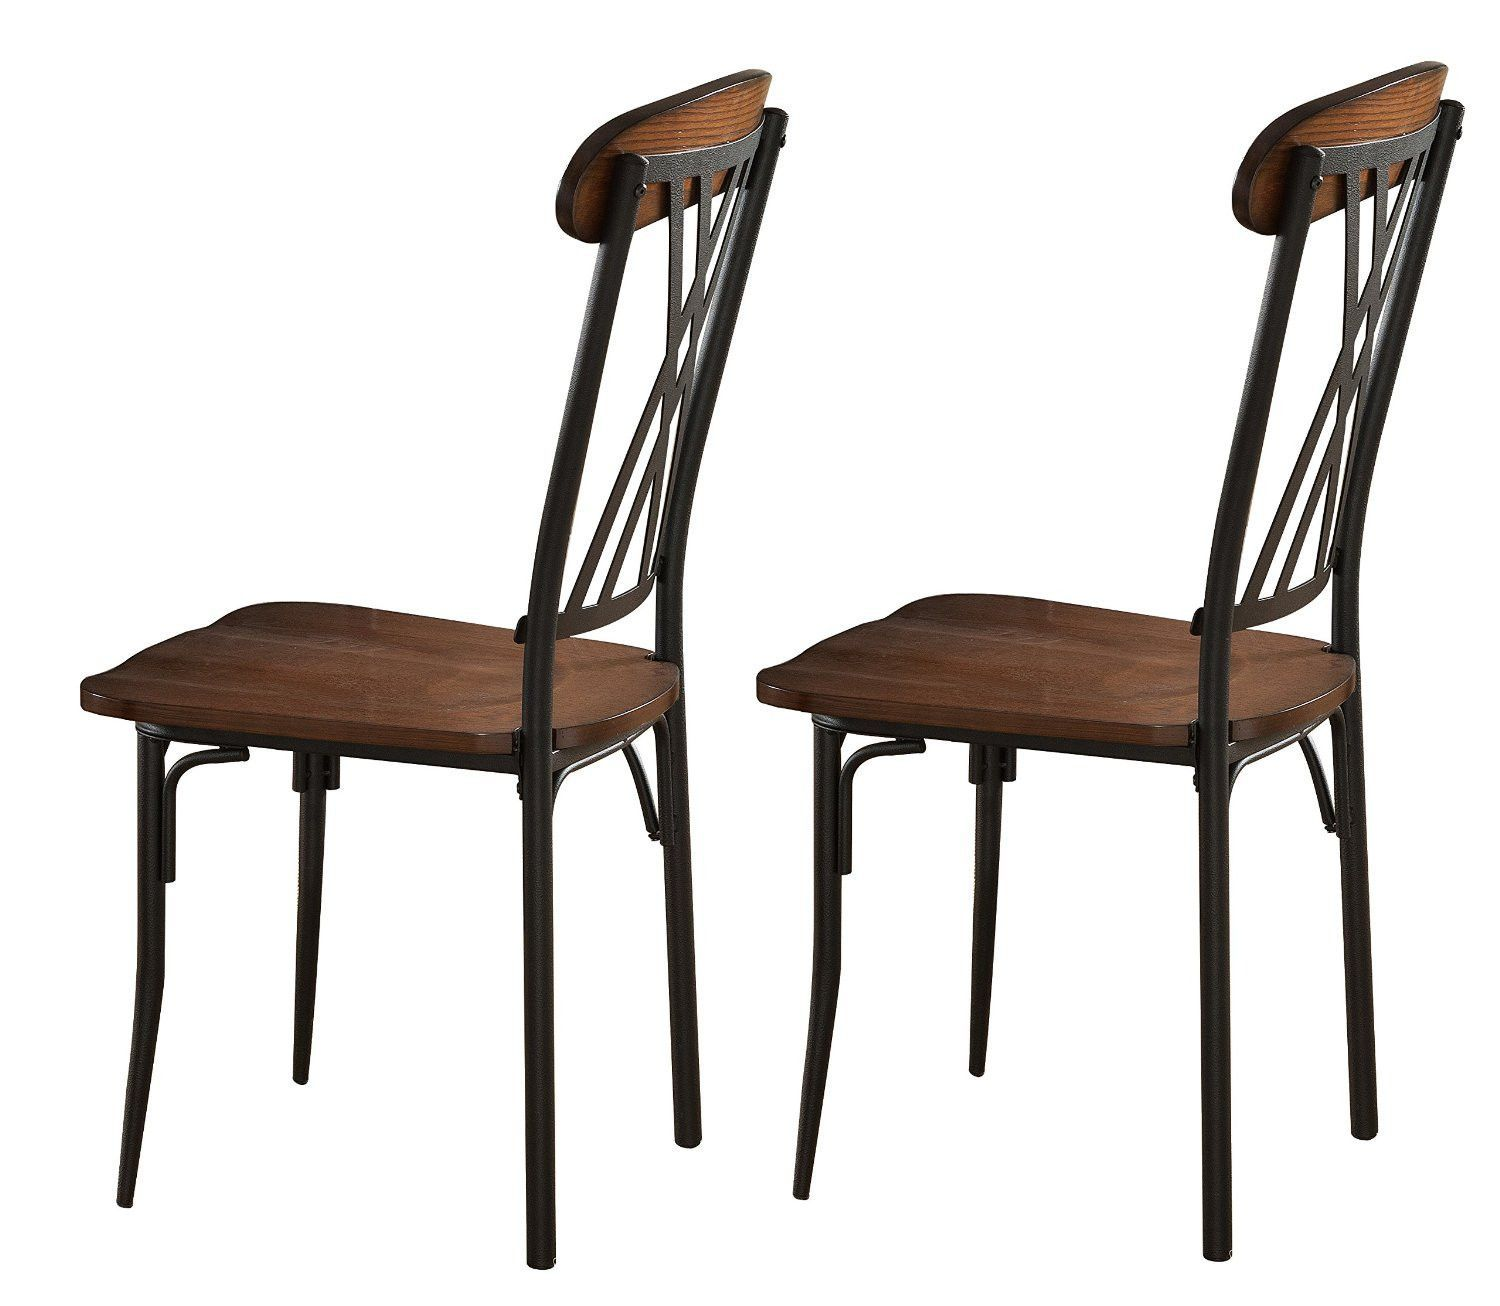 Pilaster designs black ash finish wood with metal dining dinette kitchen chairs set